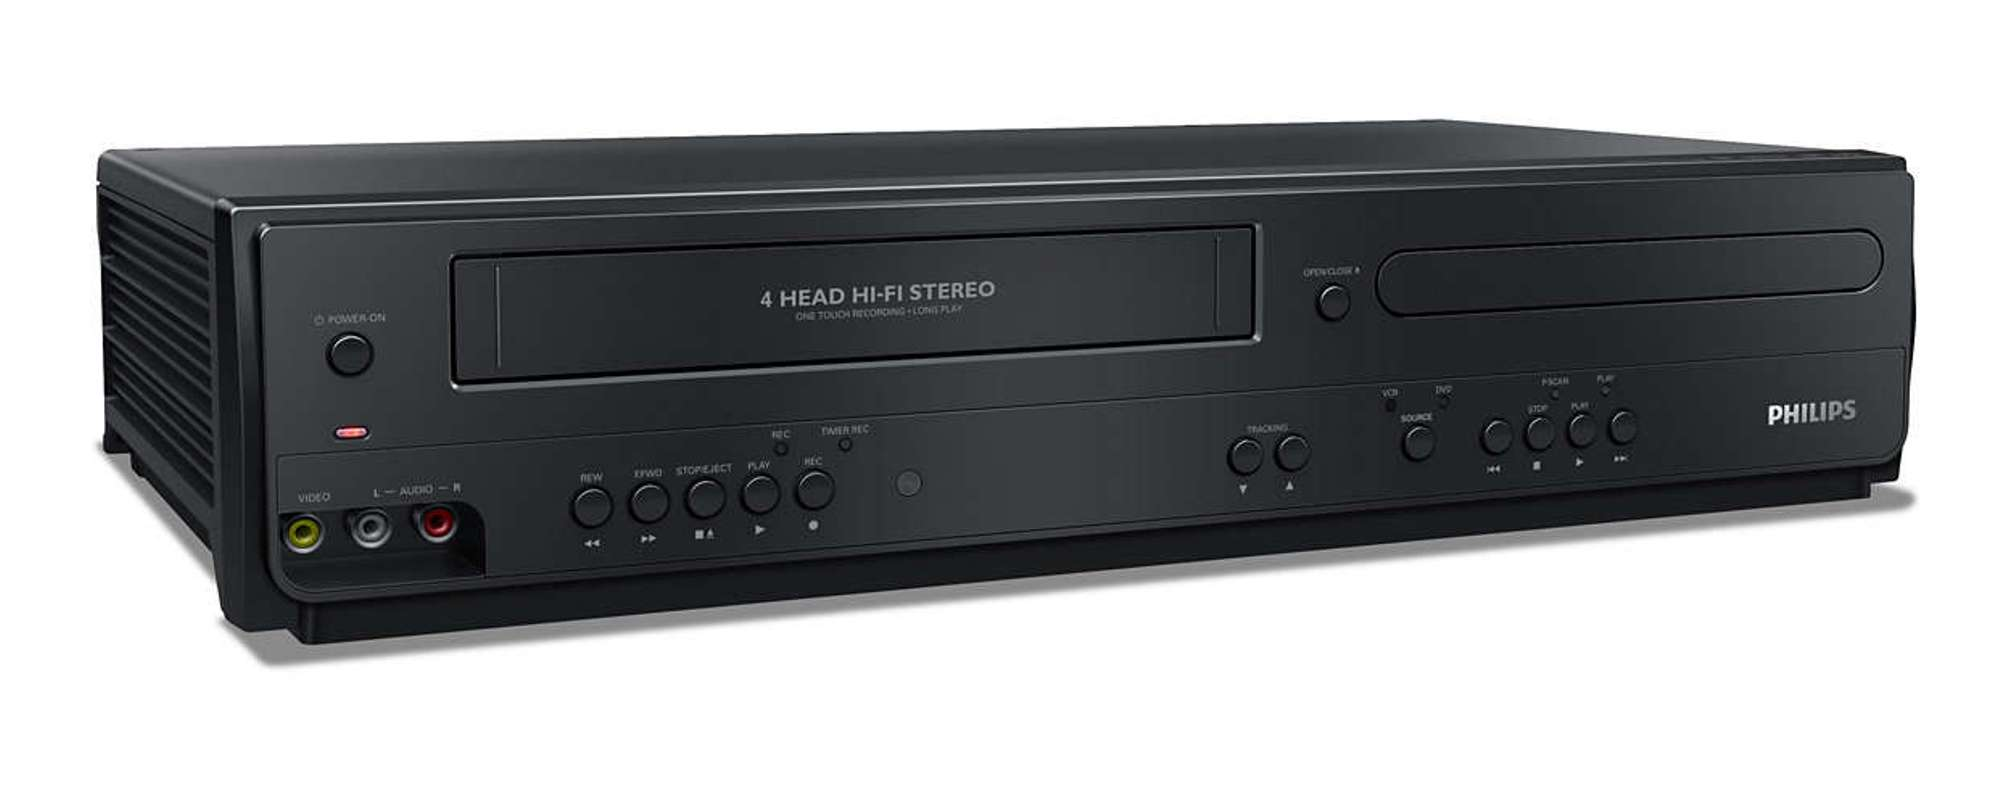 Philips DVD VCR Combo Player